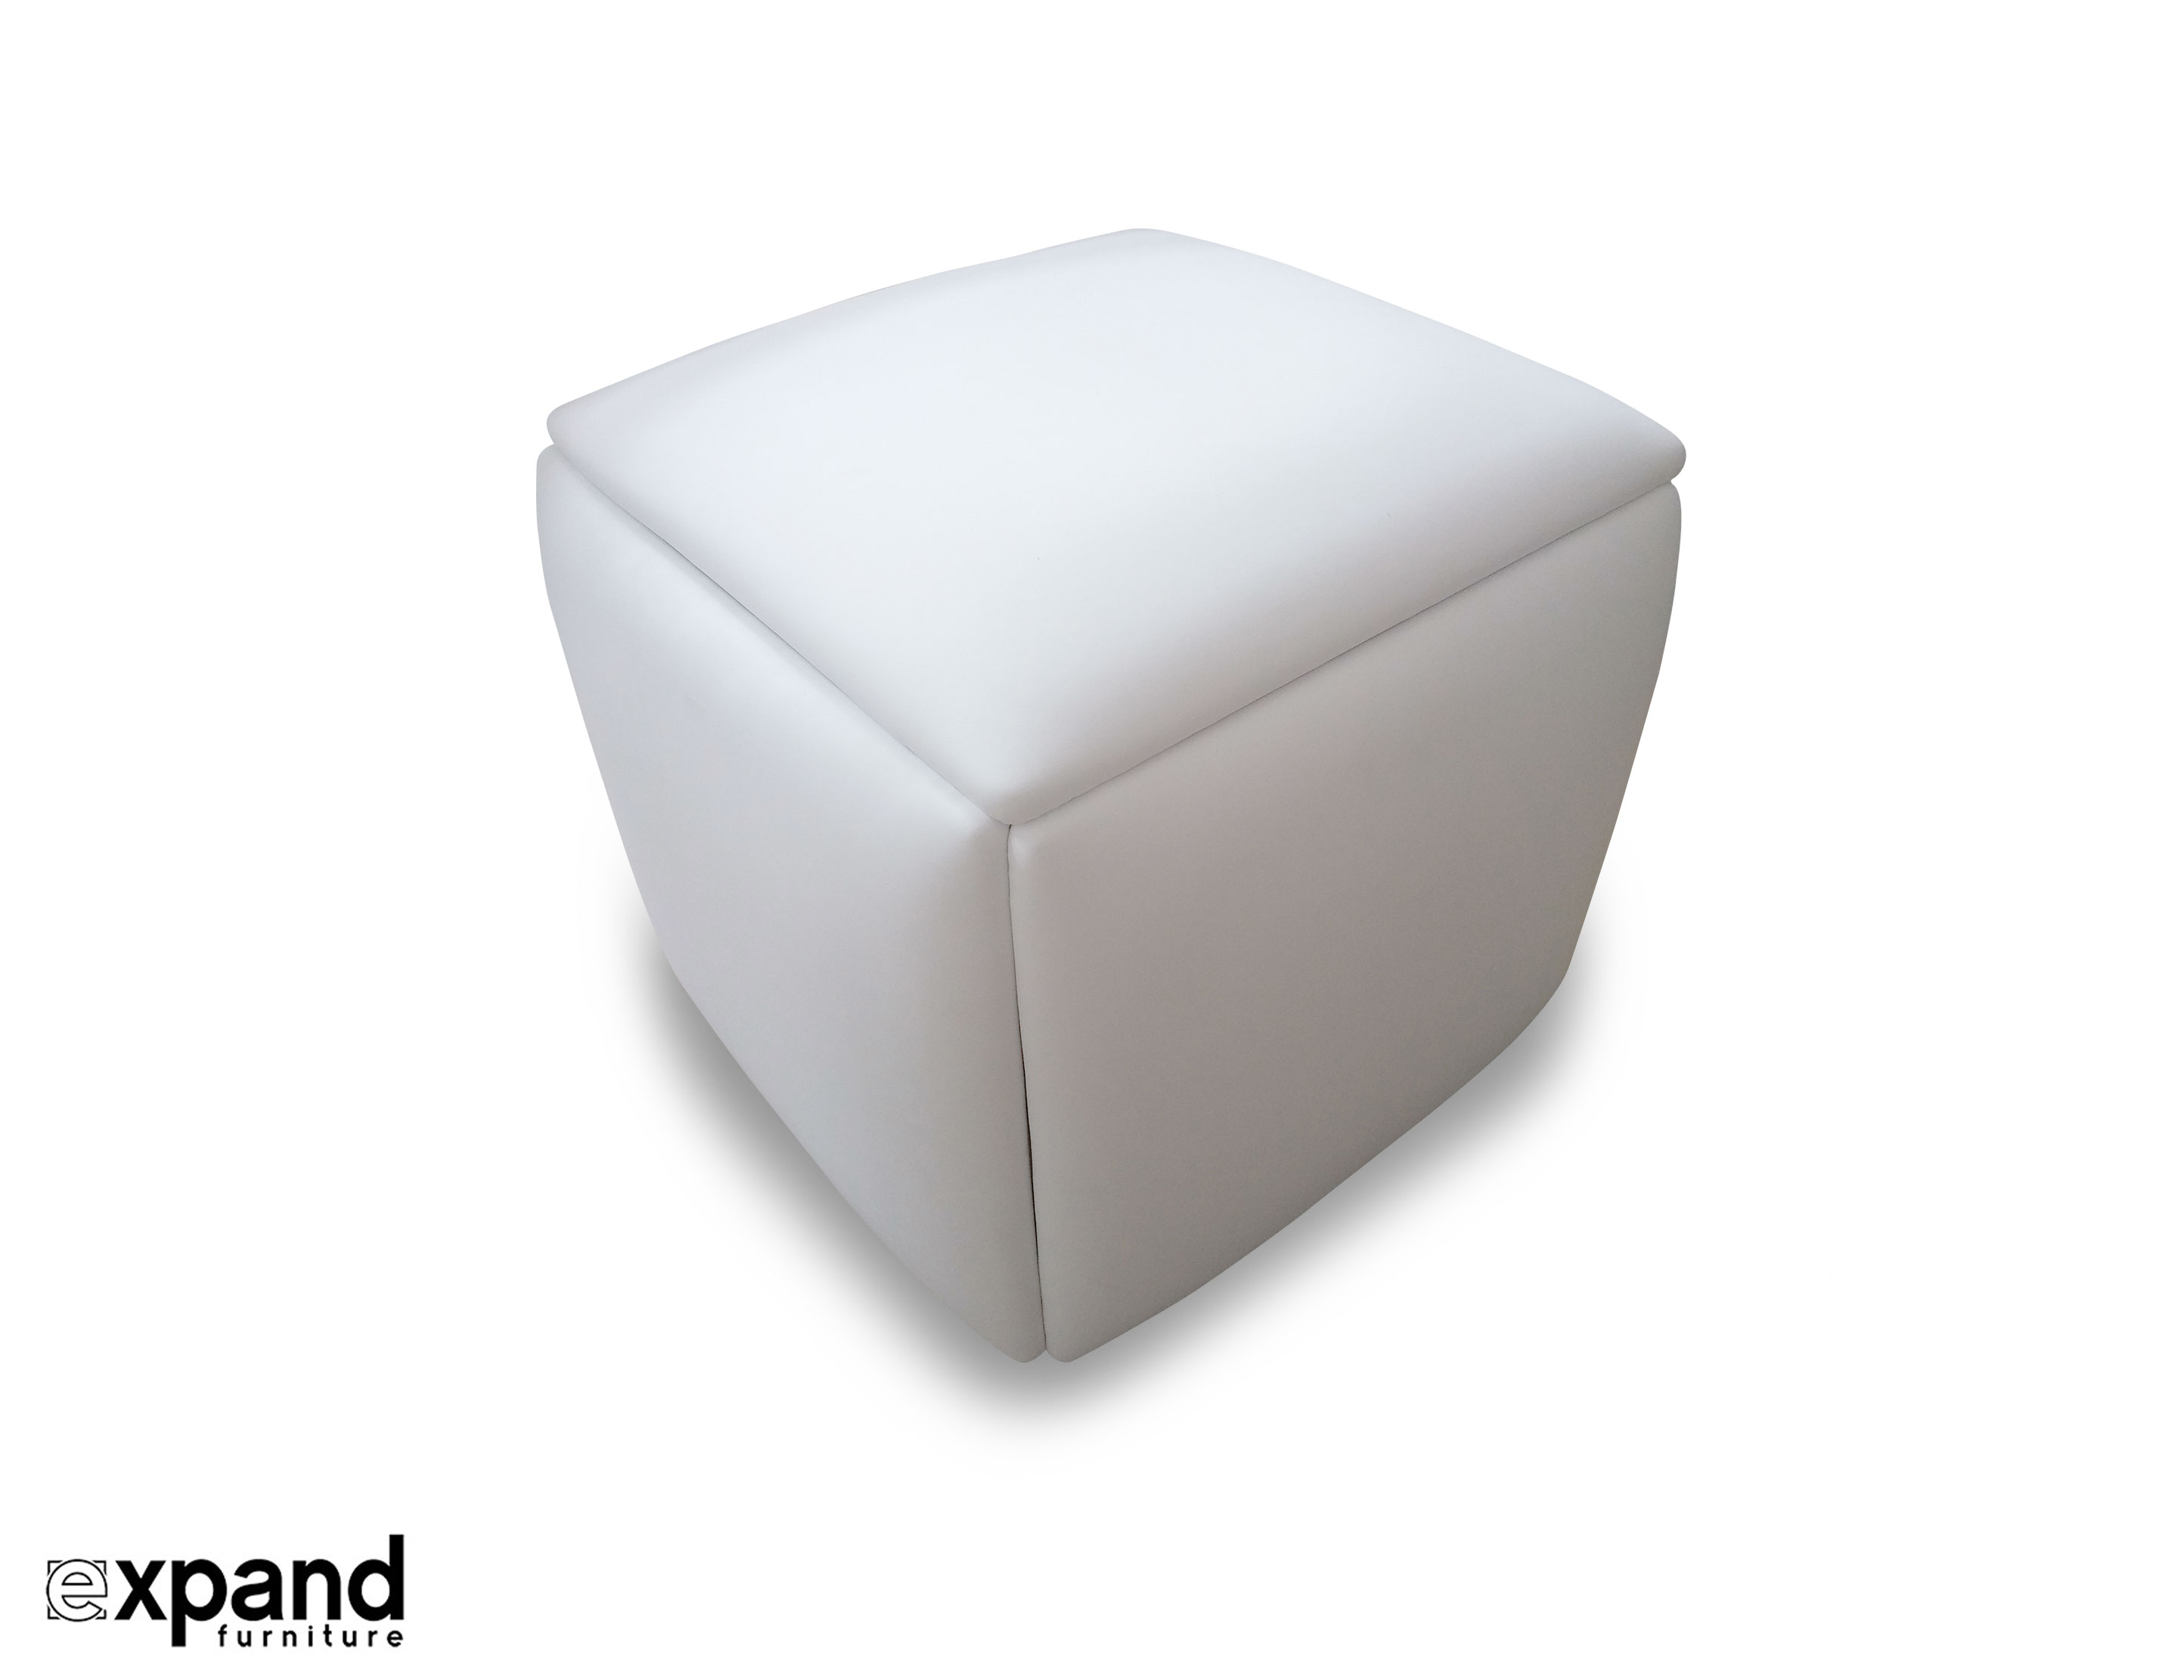 prev  sc 1 st  Expand Furniture & Companion Cube - 5 Hidden Seats Ottoman | Expand Furniture - Folding ...